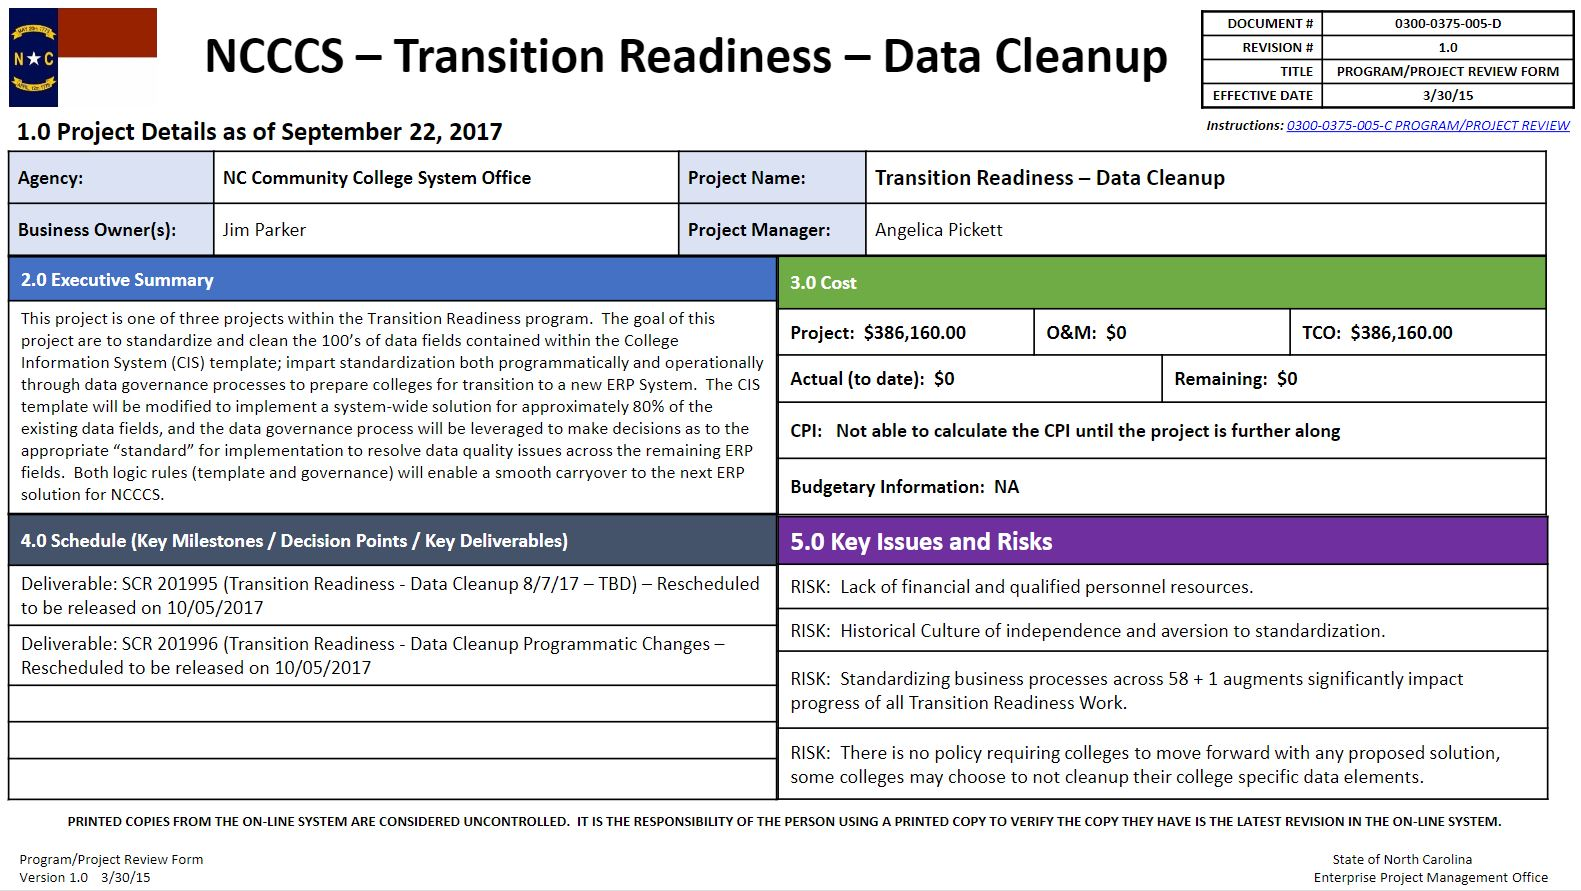 Transition Readiness - Data Cleanup Project progress update image